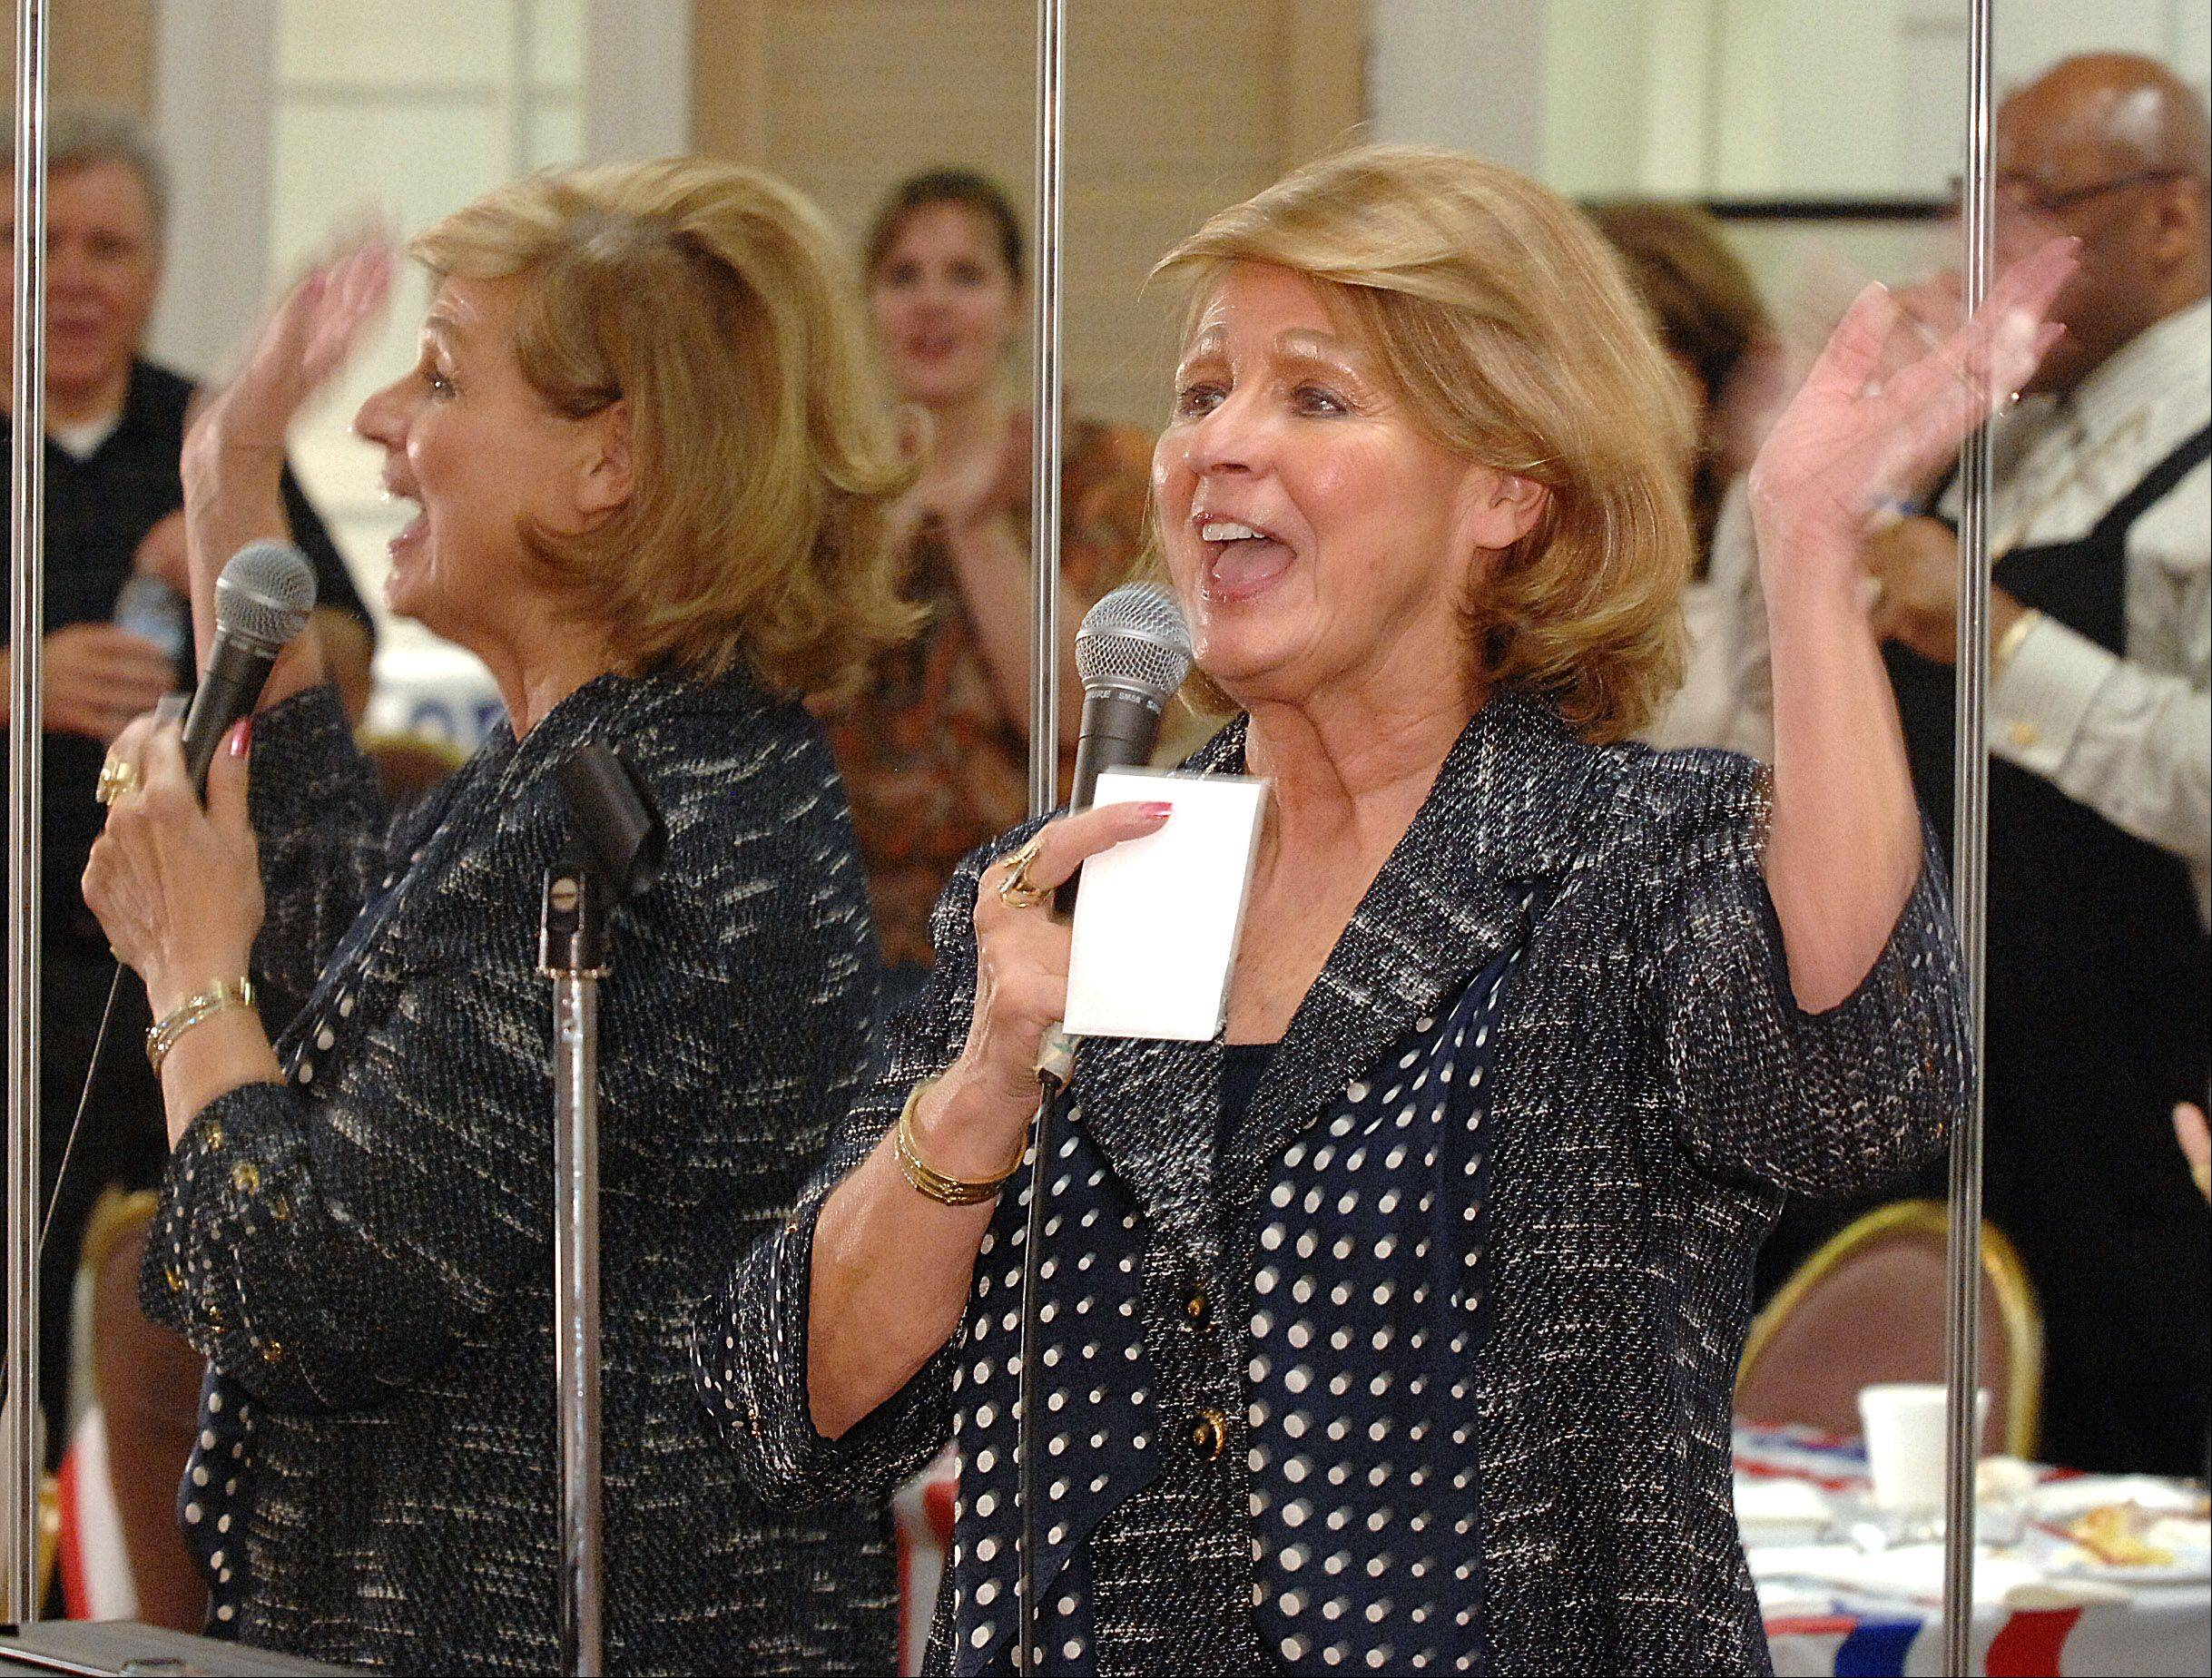 District 23 State Senator Carole Pankau gives her victory speech at the Bloomingdale Township Republican headquarters.